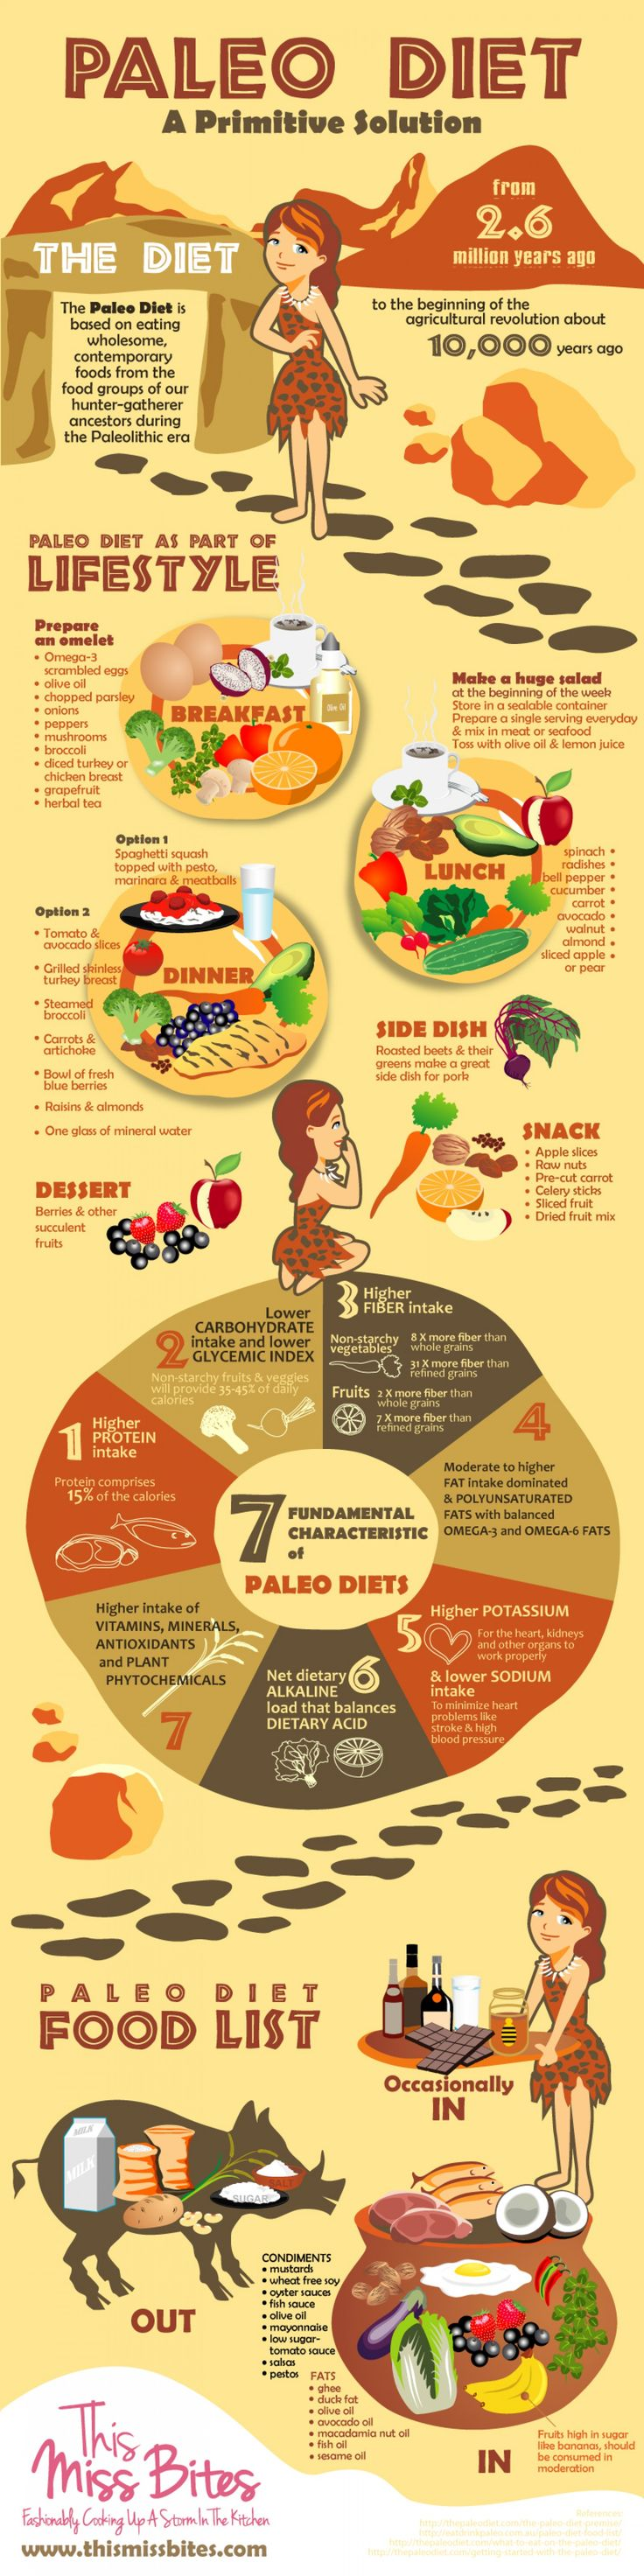 Paleolithic Diet - Paleo Diet Plan For Beginners [Infographic]